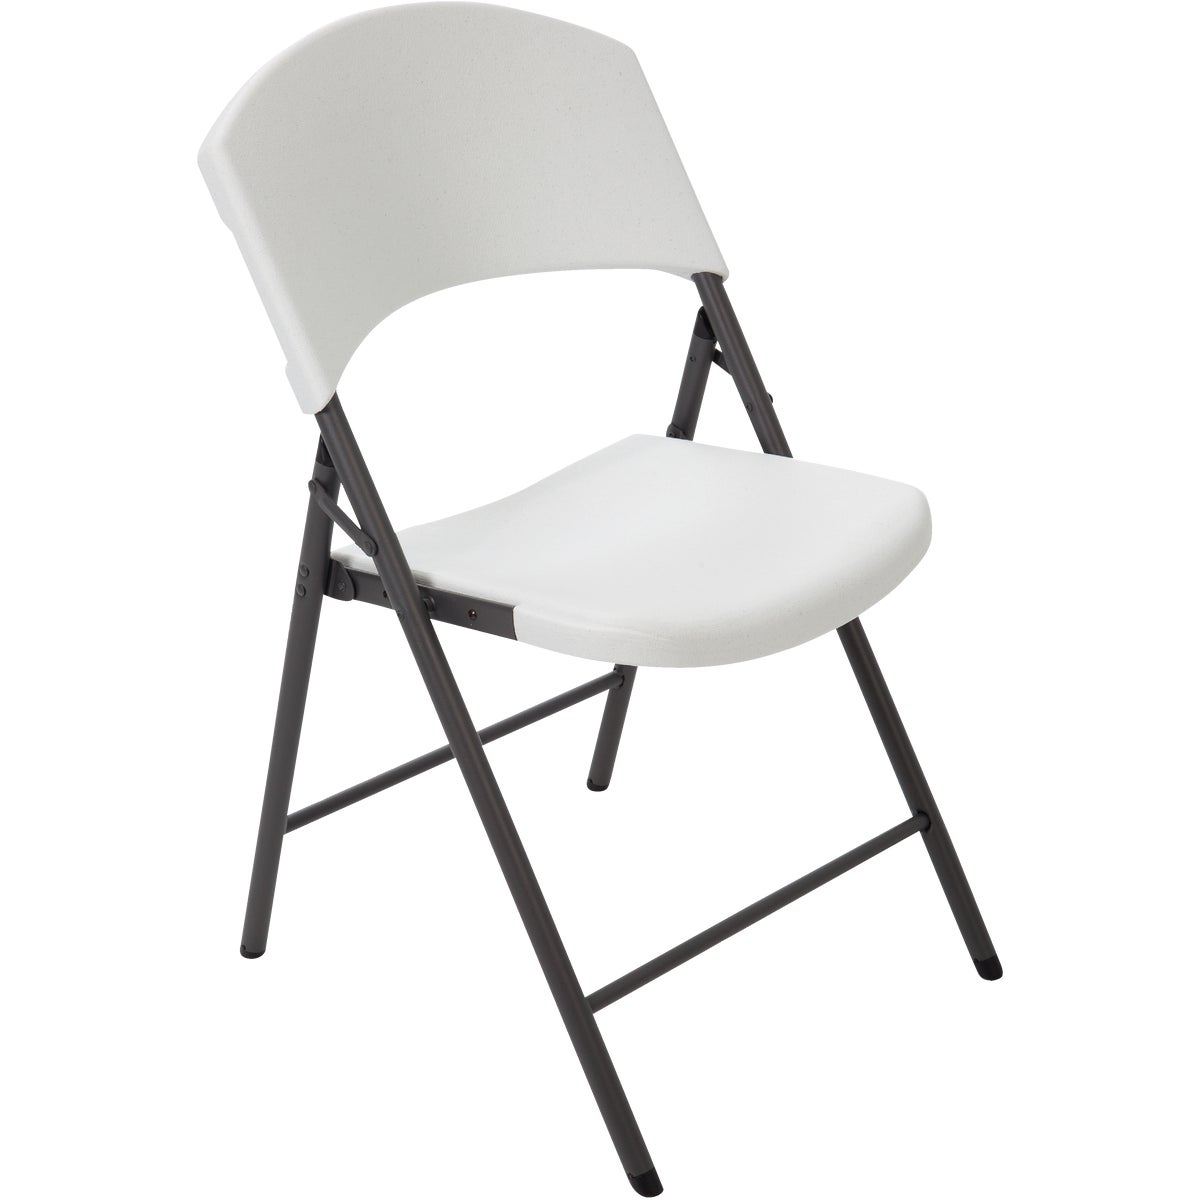 FOLDING CHAIR - 2810 by Lifetime  Xiamen